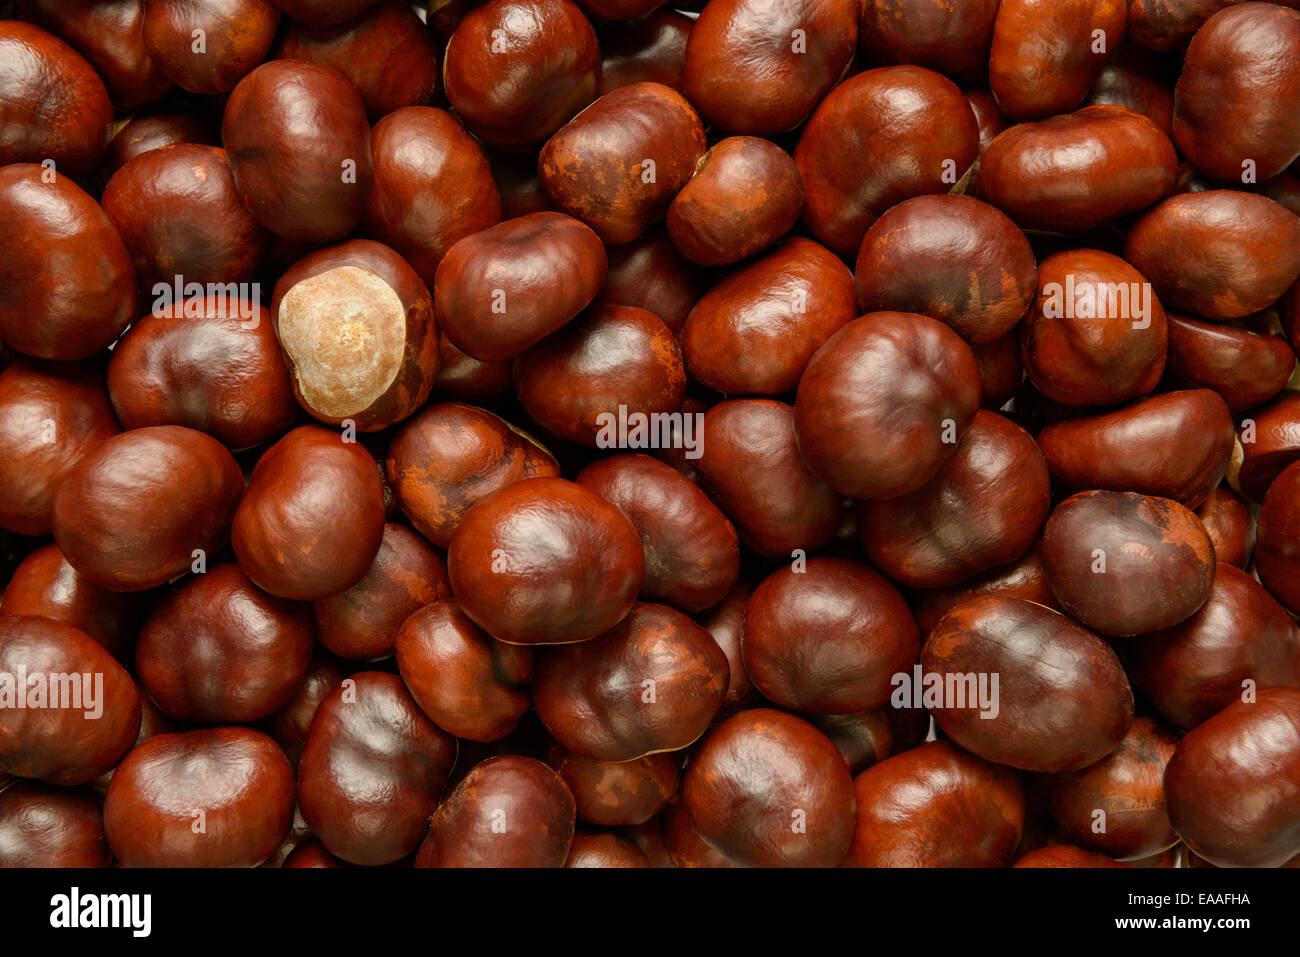 Hundreds of Conkers or Horse chestnut - Stock Image